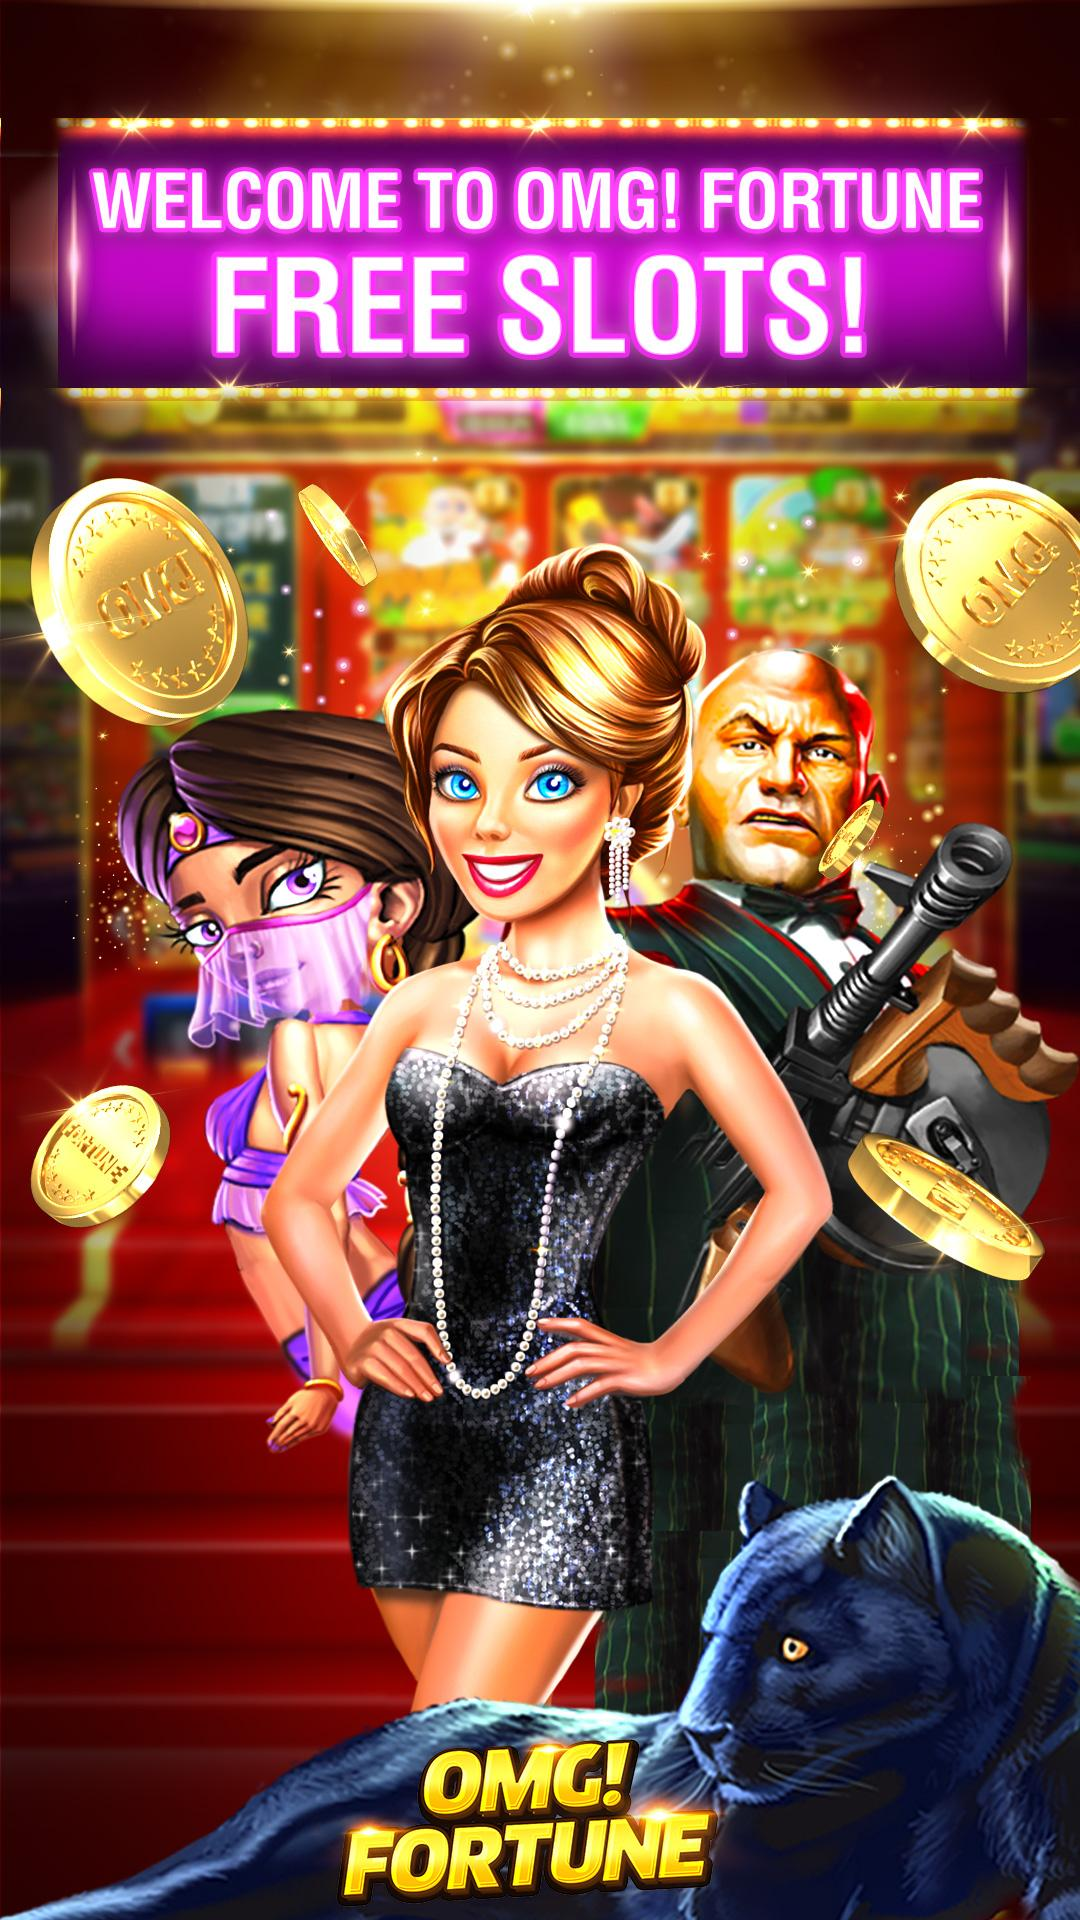 OMG! Fortune Free Slots Casino screenshot #1